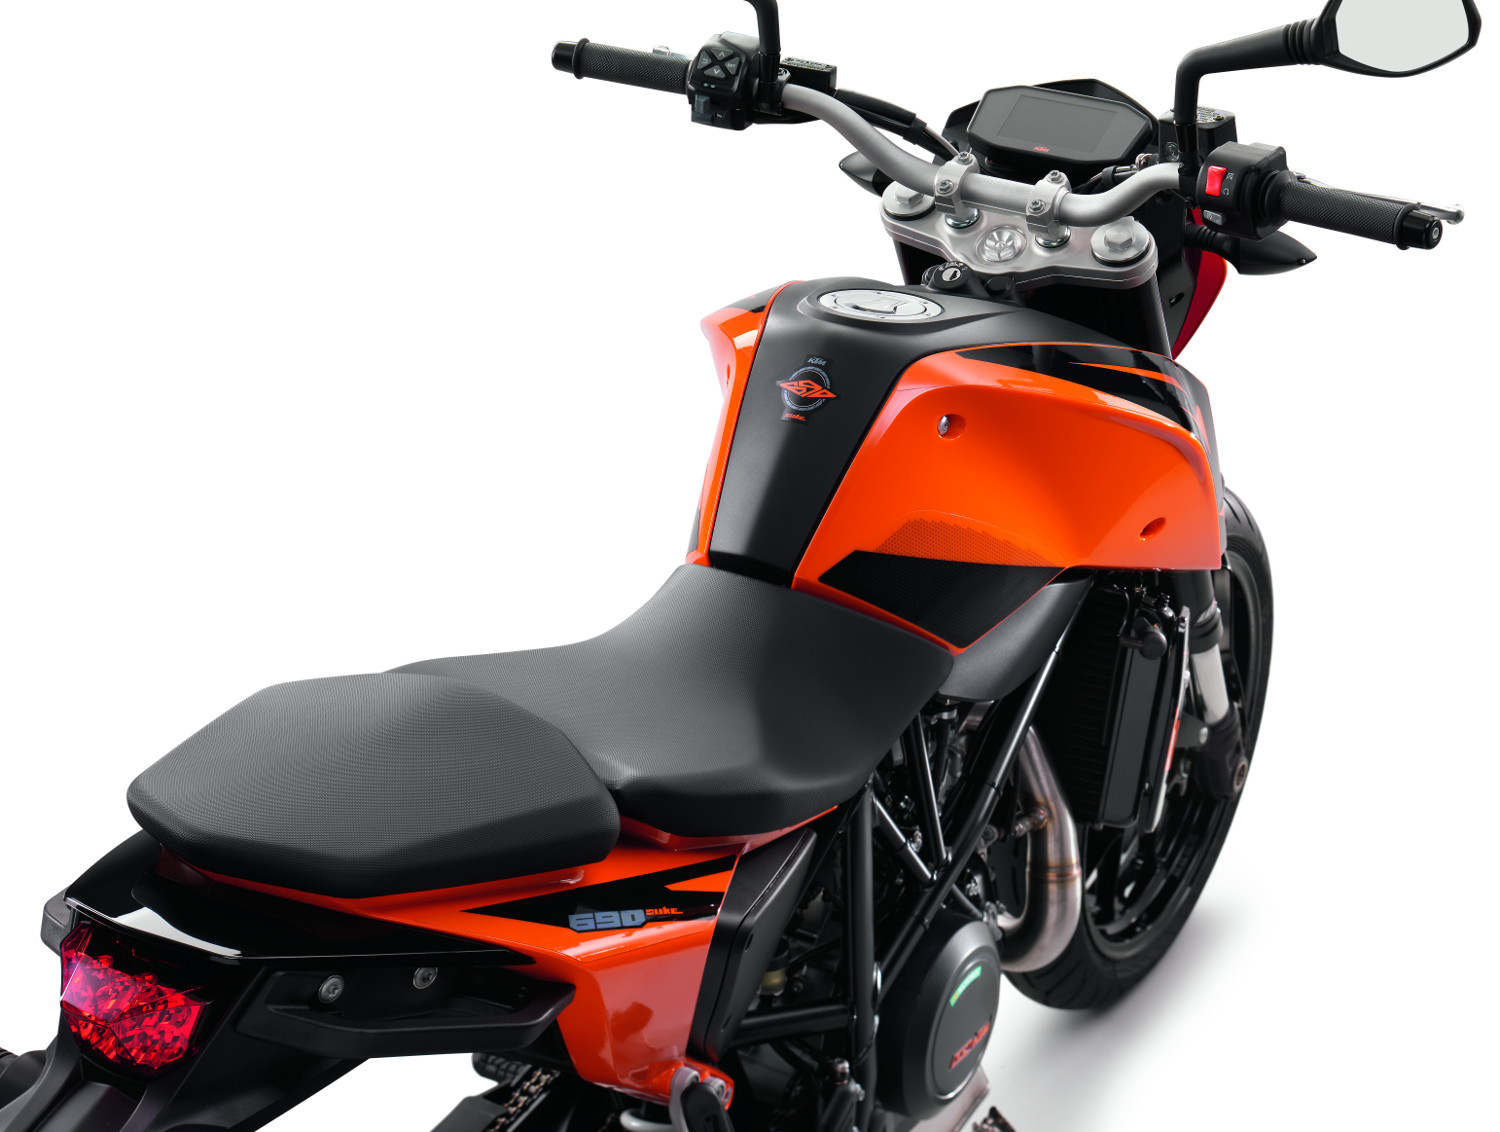 moving the mountain 2016 ktm 690 duke runs wild the verdict ktm blog. Black Bedroom Furniture Sets. Home Design Ideas